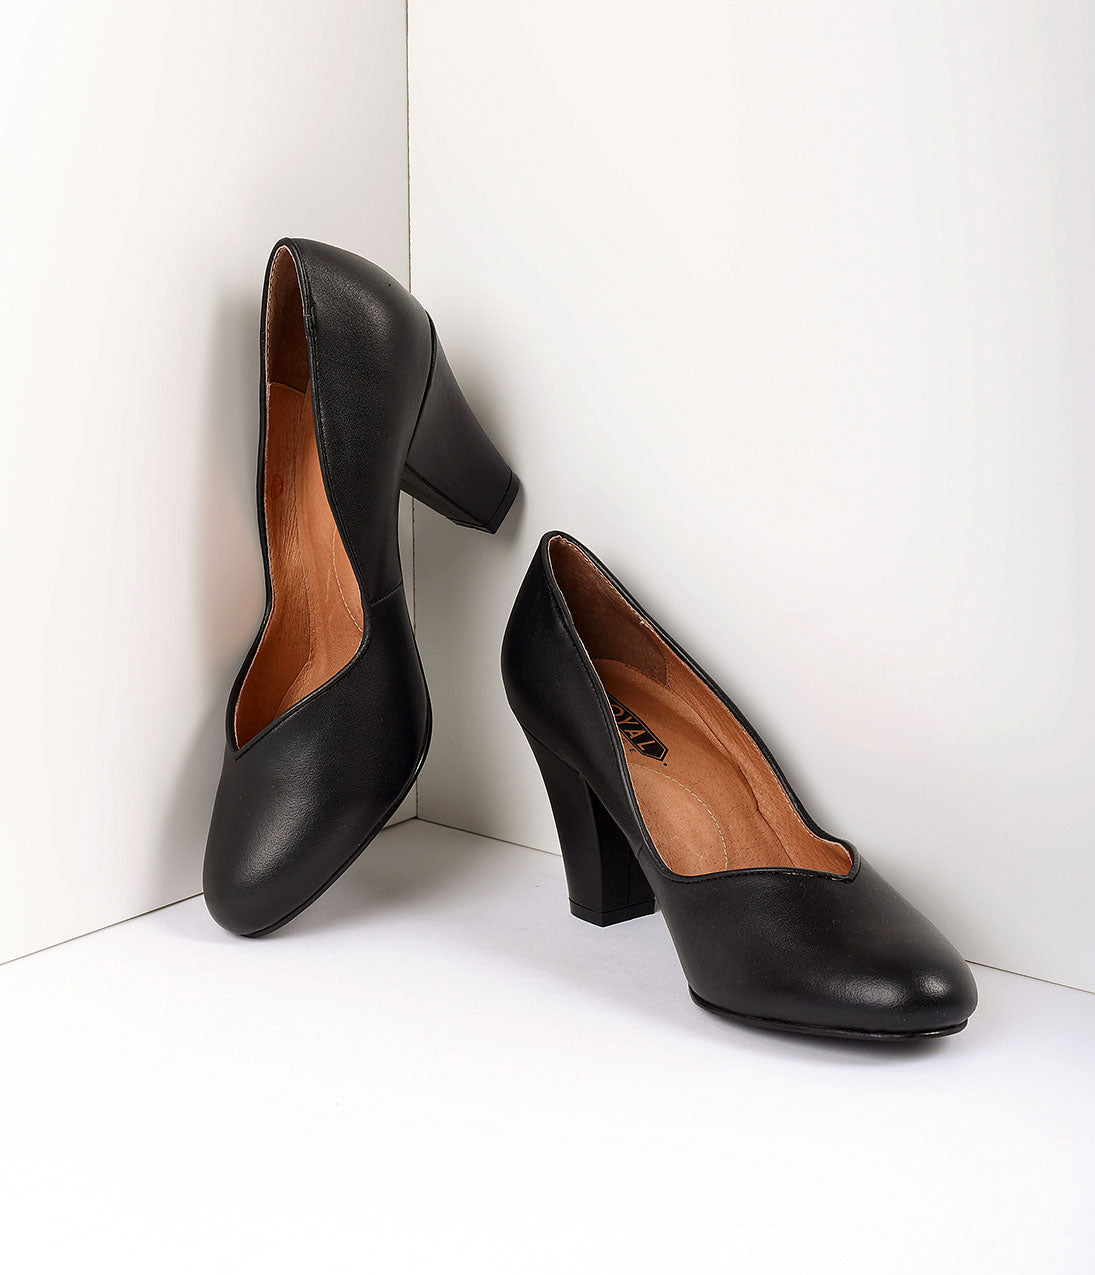 1940s Style Shoes, 40s Shoes Royal Vintage 1940S Style Black Sweetheart Marilyn Pumps $150.00 AT vintagedancer.com